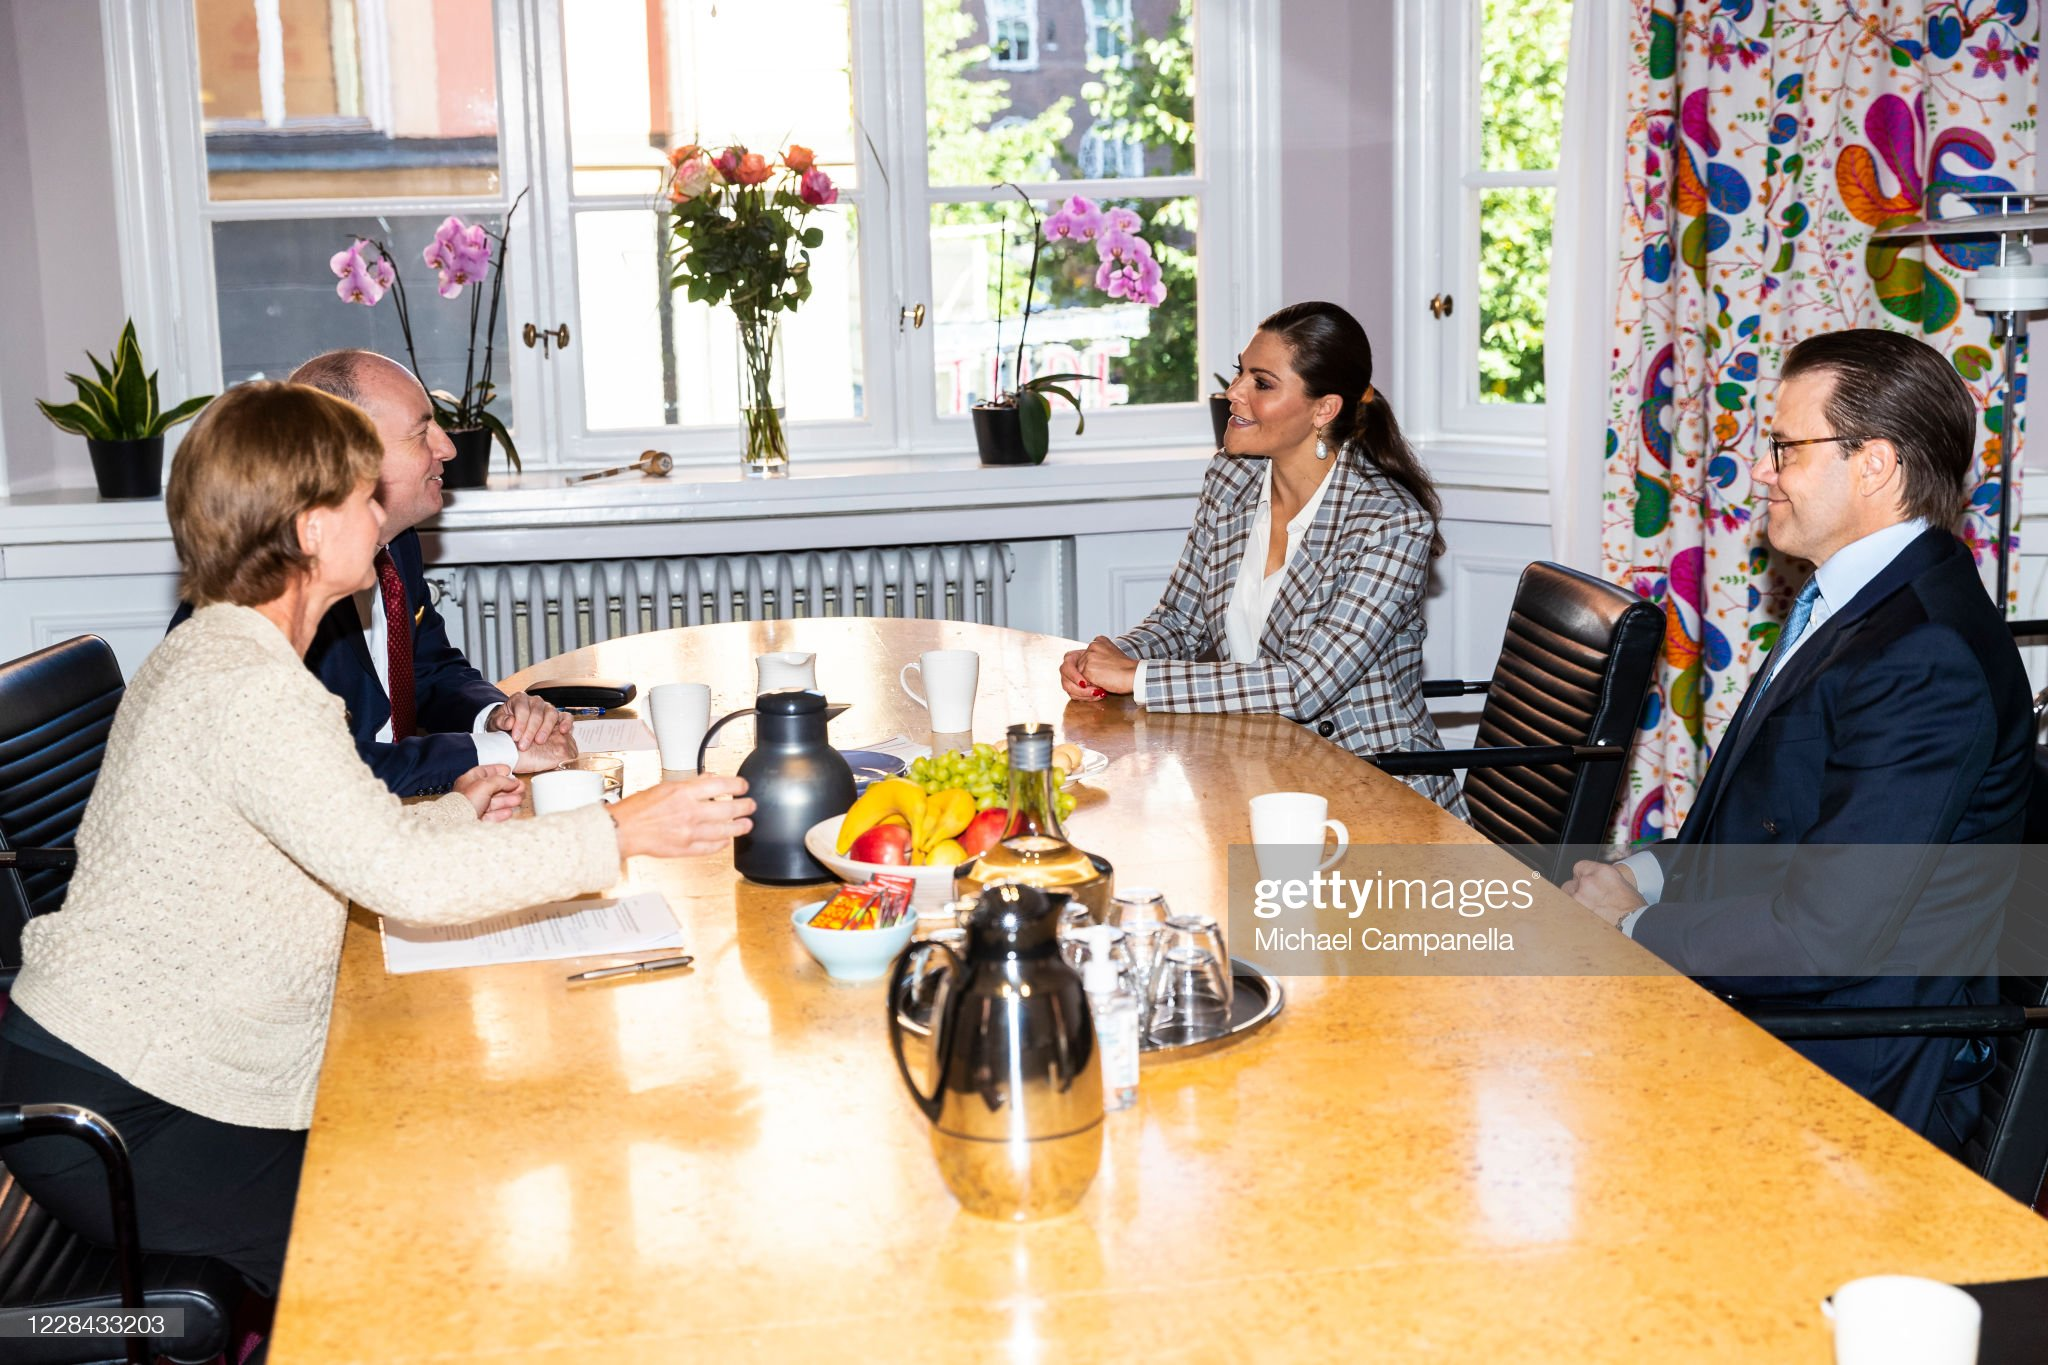 crown-princess-victoria-and-prince-daniel-of-sweden-visit-the-swedish-picture-id1228433203